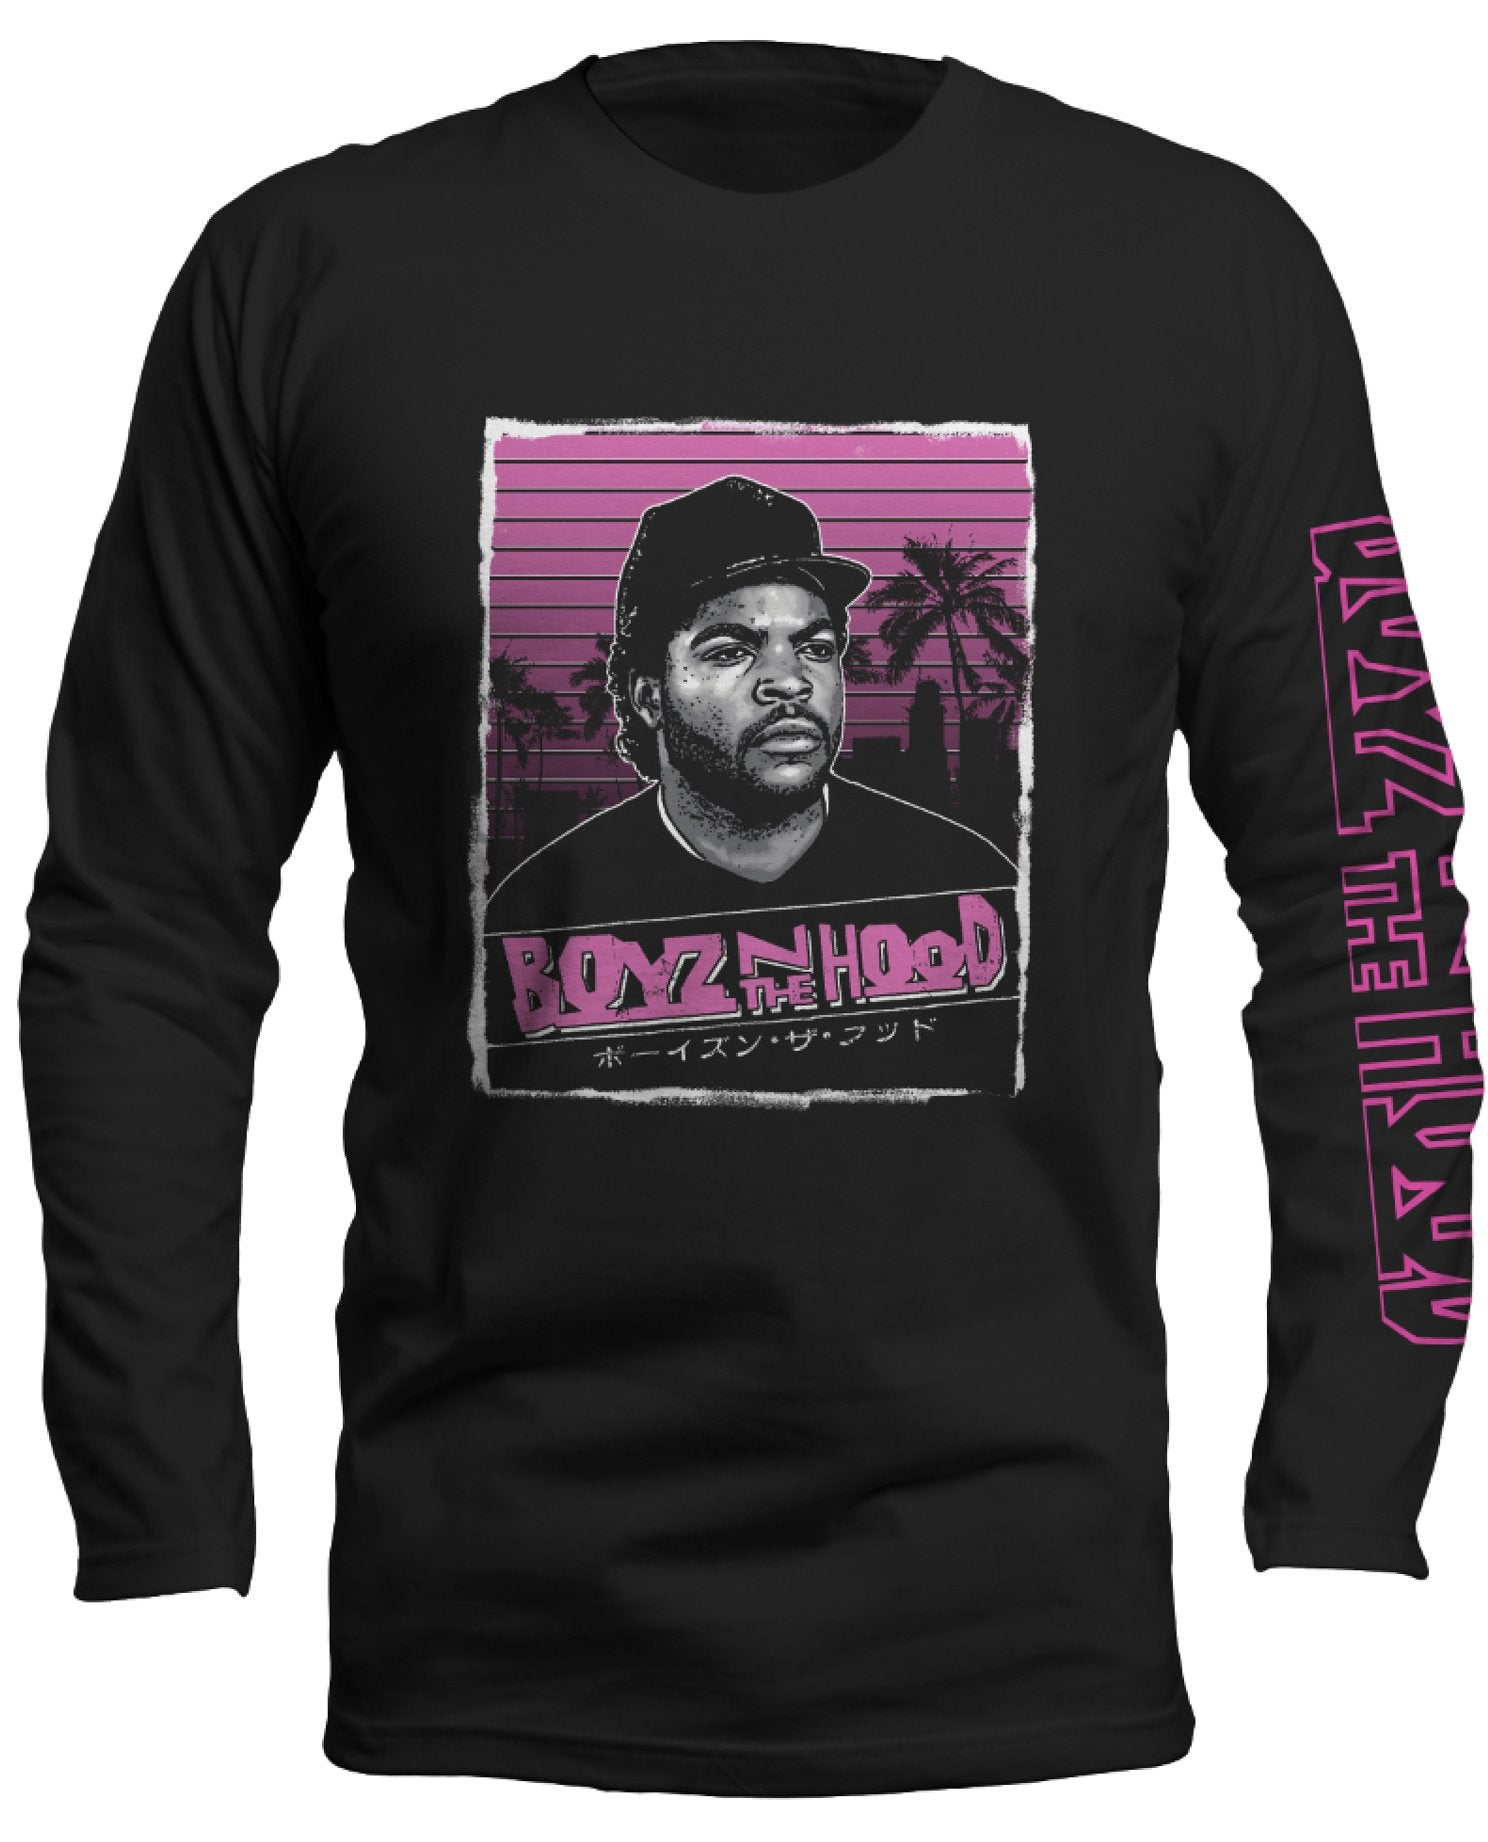 Boyz n the Hood Pink Graphic Long Sleeve Shirt - Hype Means Nothing